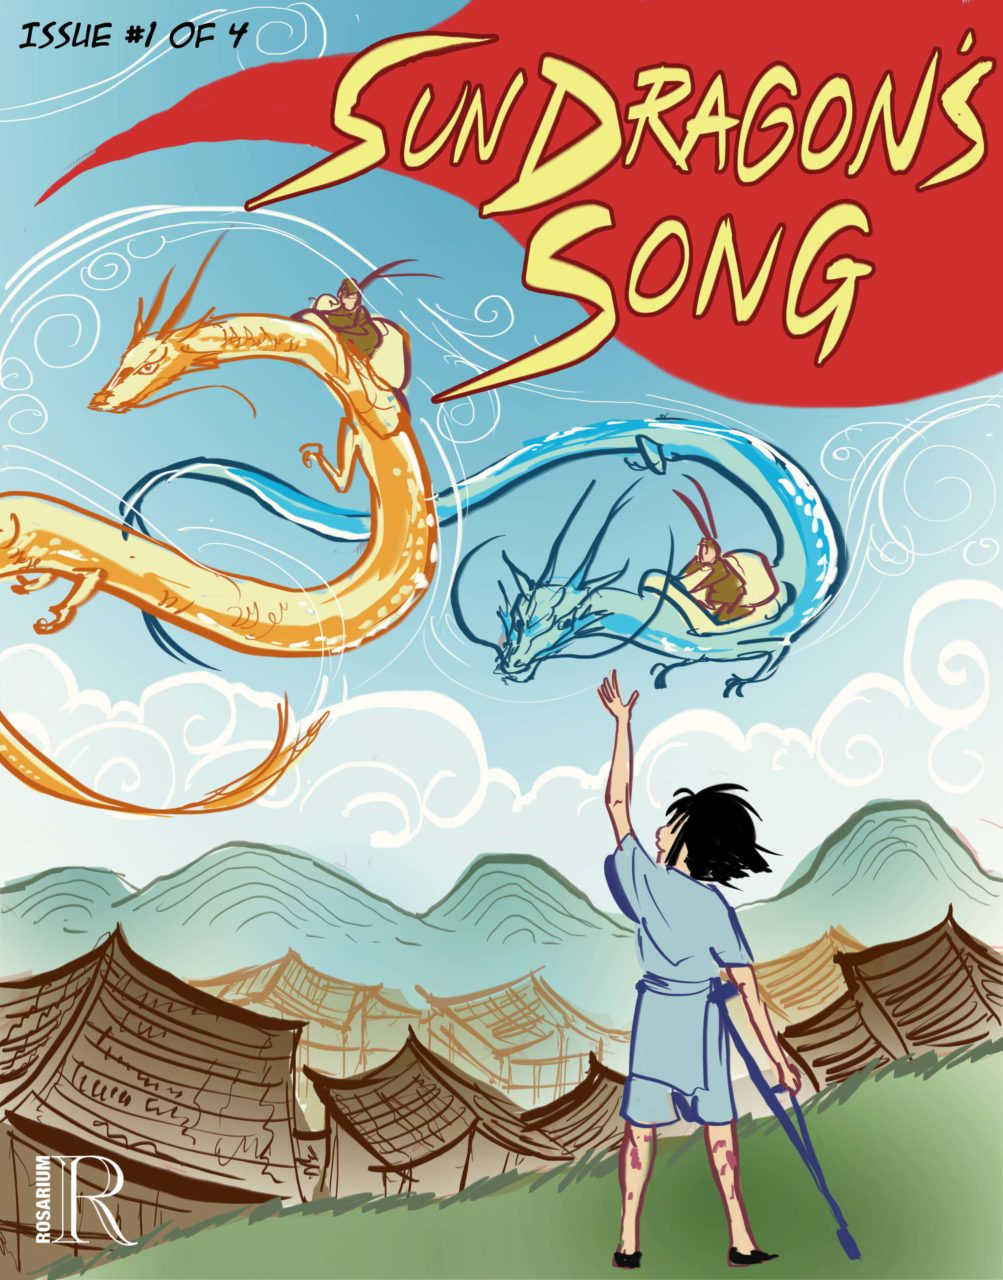 Diversity in Comics: A First Look at Sun Dragon's Song #1